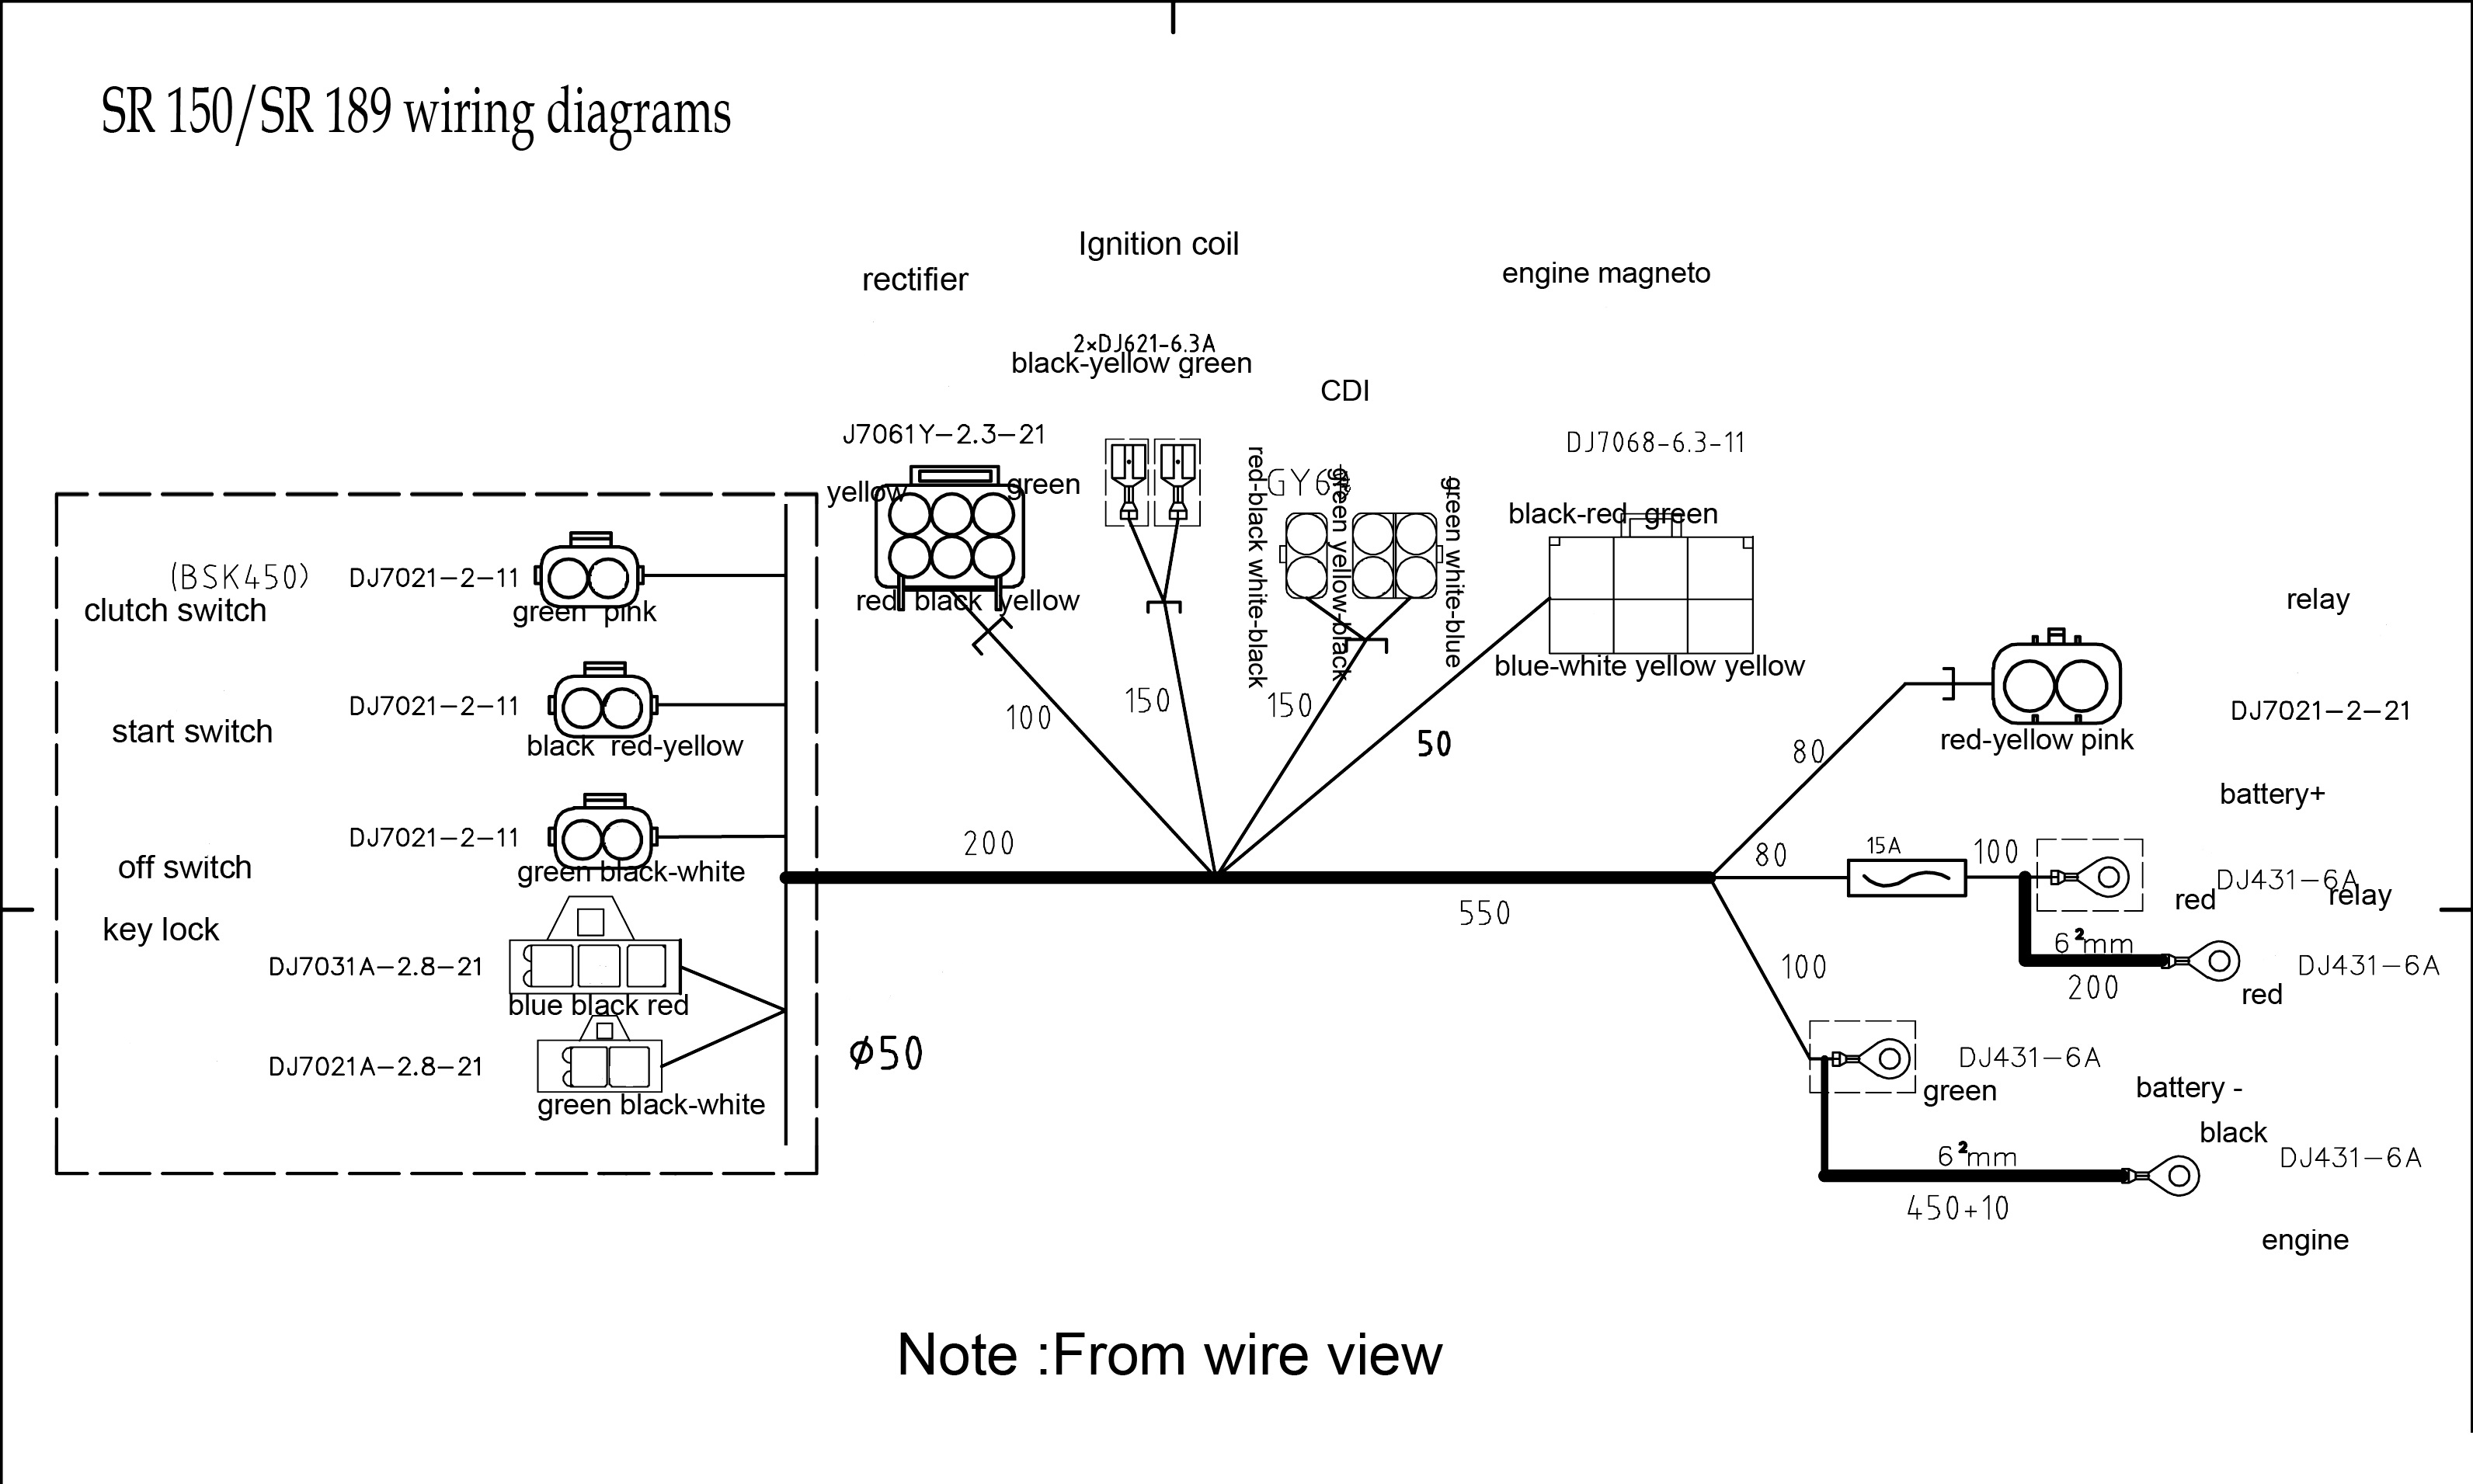 Mercedes Benz Wiring Diagrams W107 Library Starfinder Web Etm Sr189 Dirt Bike Wire Diagram